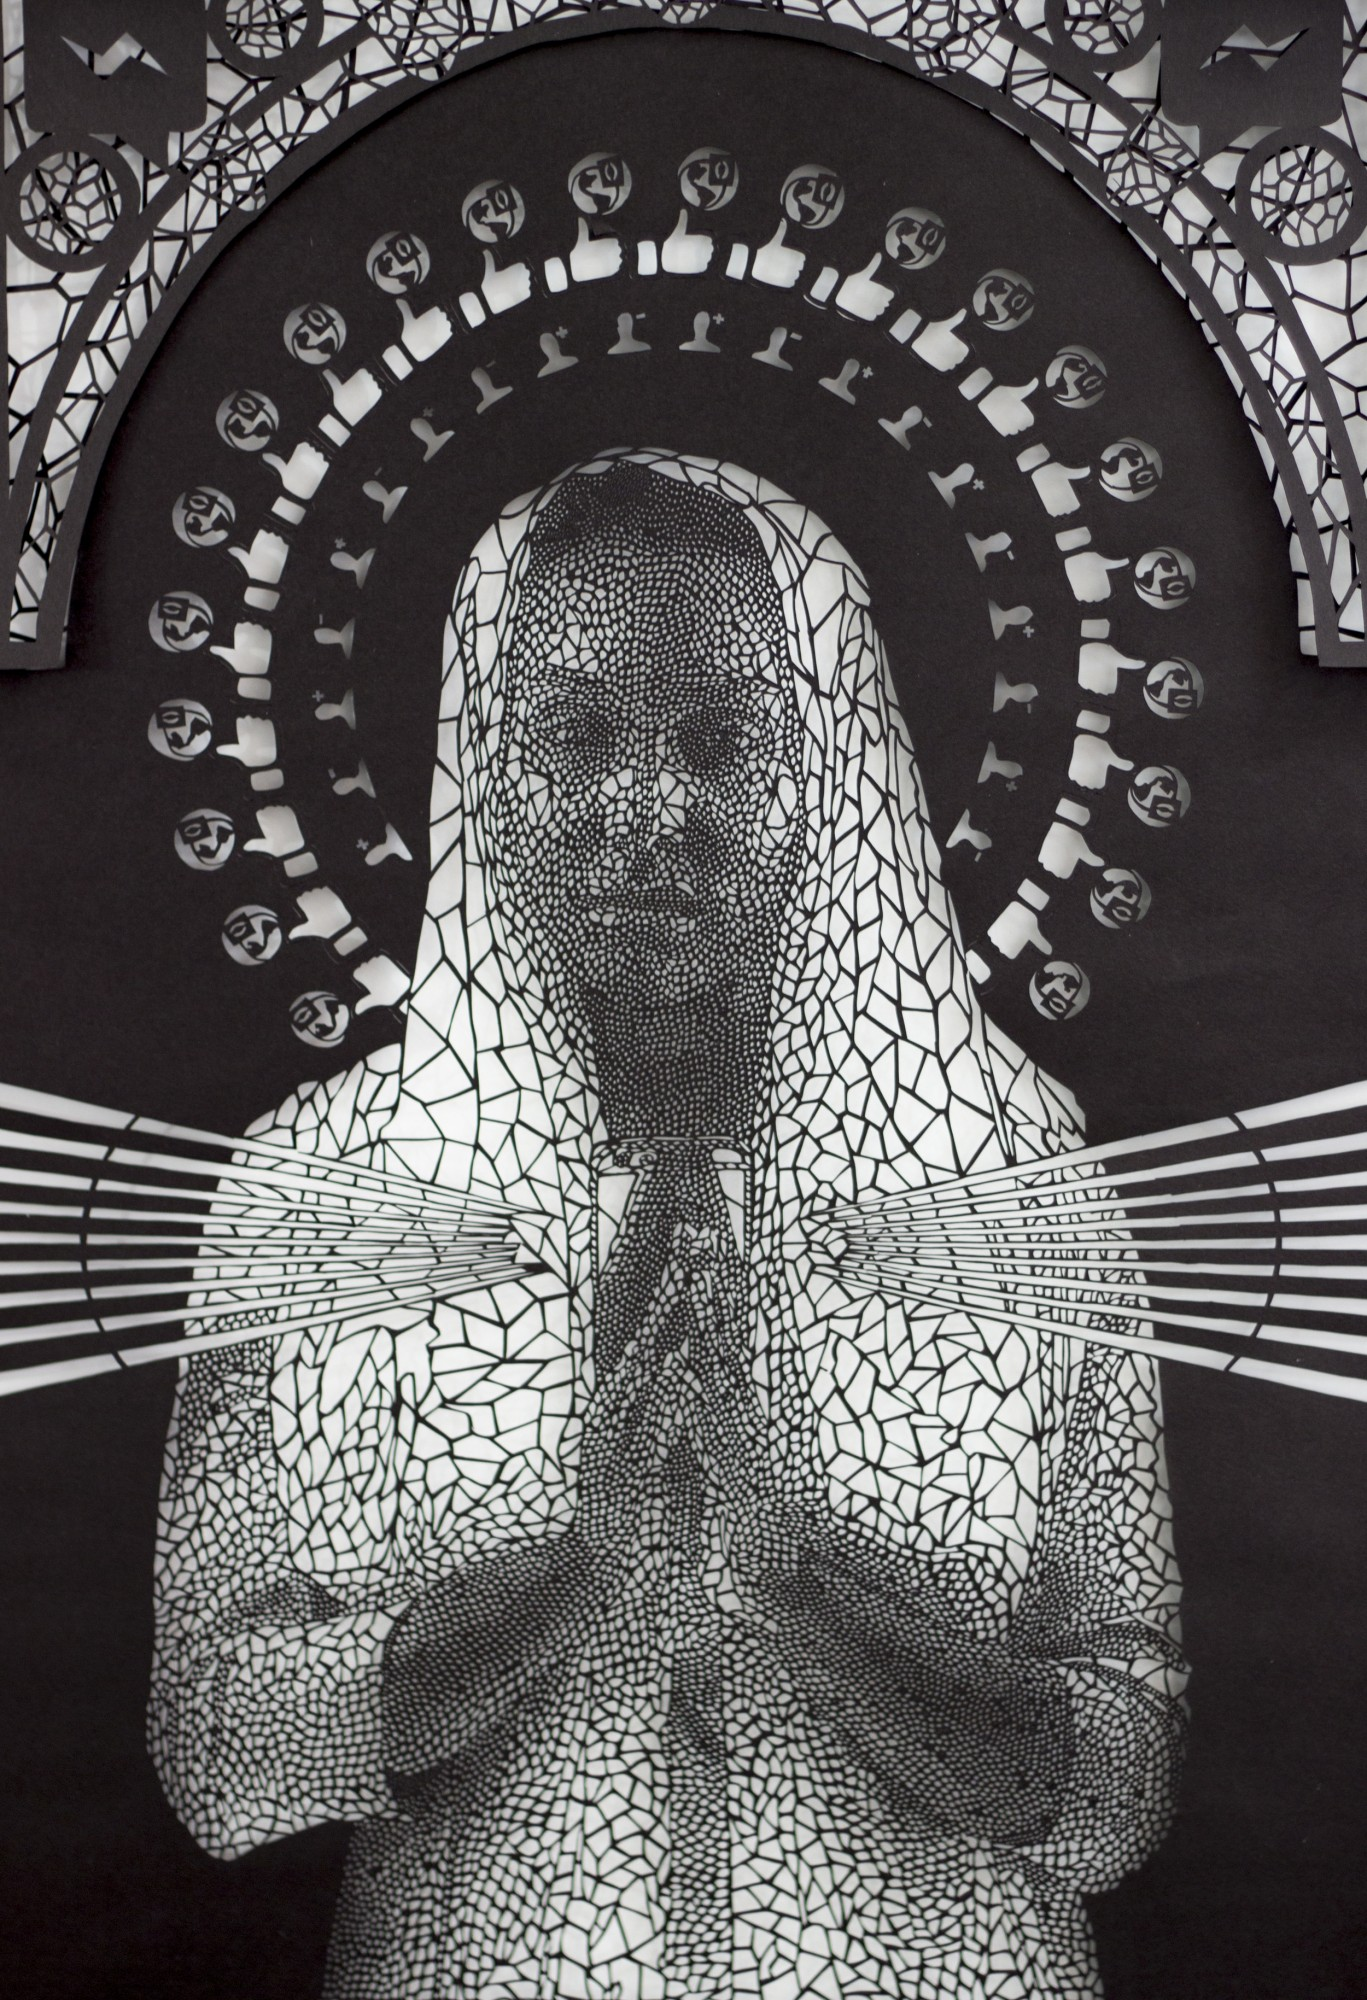 Intricate Paper Cut Social Media Iconography Meshed With Religious Art by Carlo Fantin - Mary Closeup 1